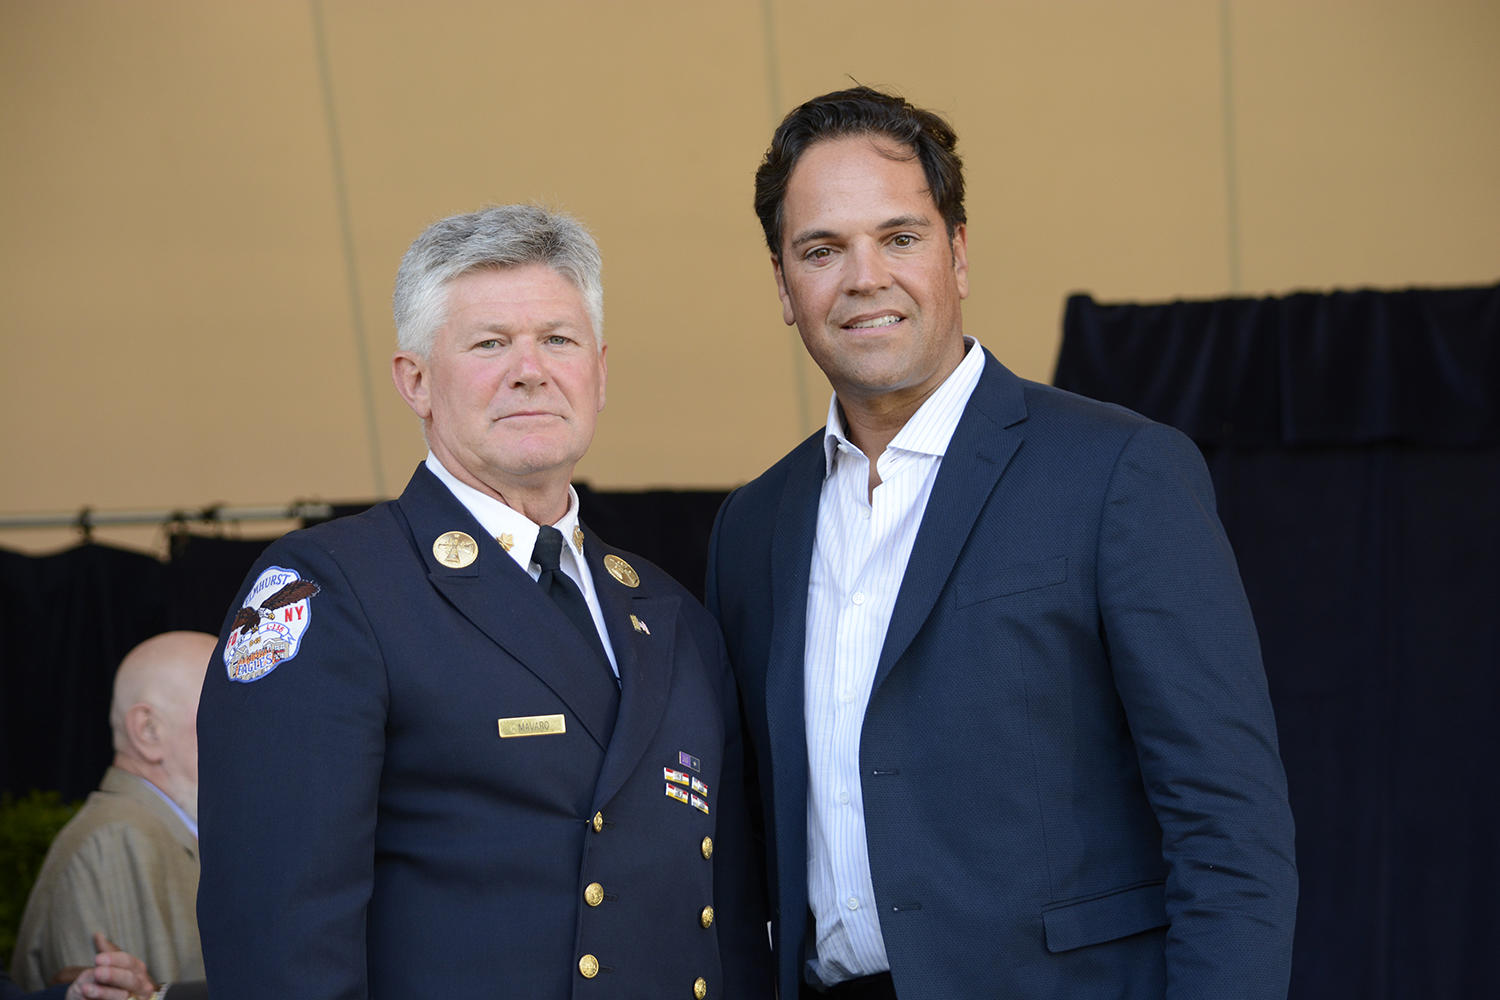 New York City Fire Department Battalion Chief Vin Mavaro stands beside 2016 Hall of Fame Inductee at that year's <em>Awards Presentation</em>. Mavaro shared his thoughts and memories of baseball's role in helping New York City, and the nation, recover from the 9/11 attacks.